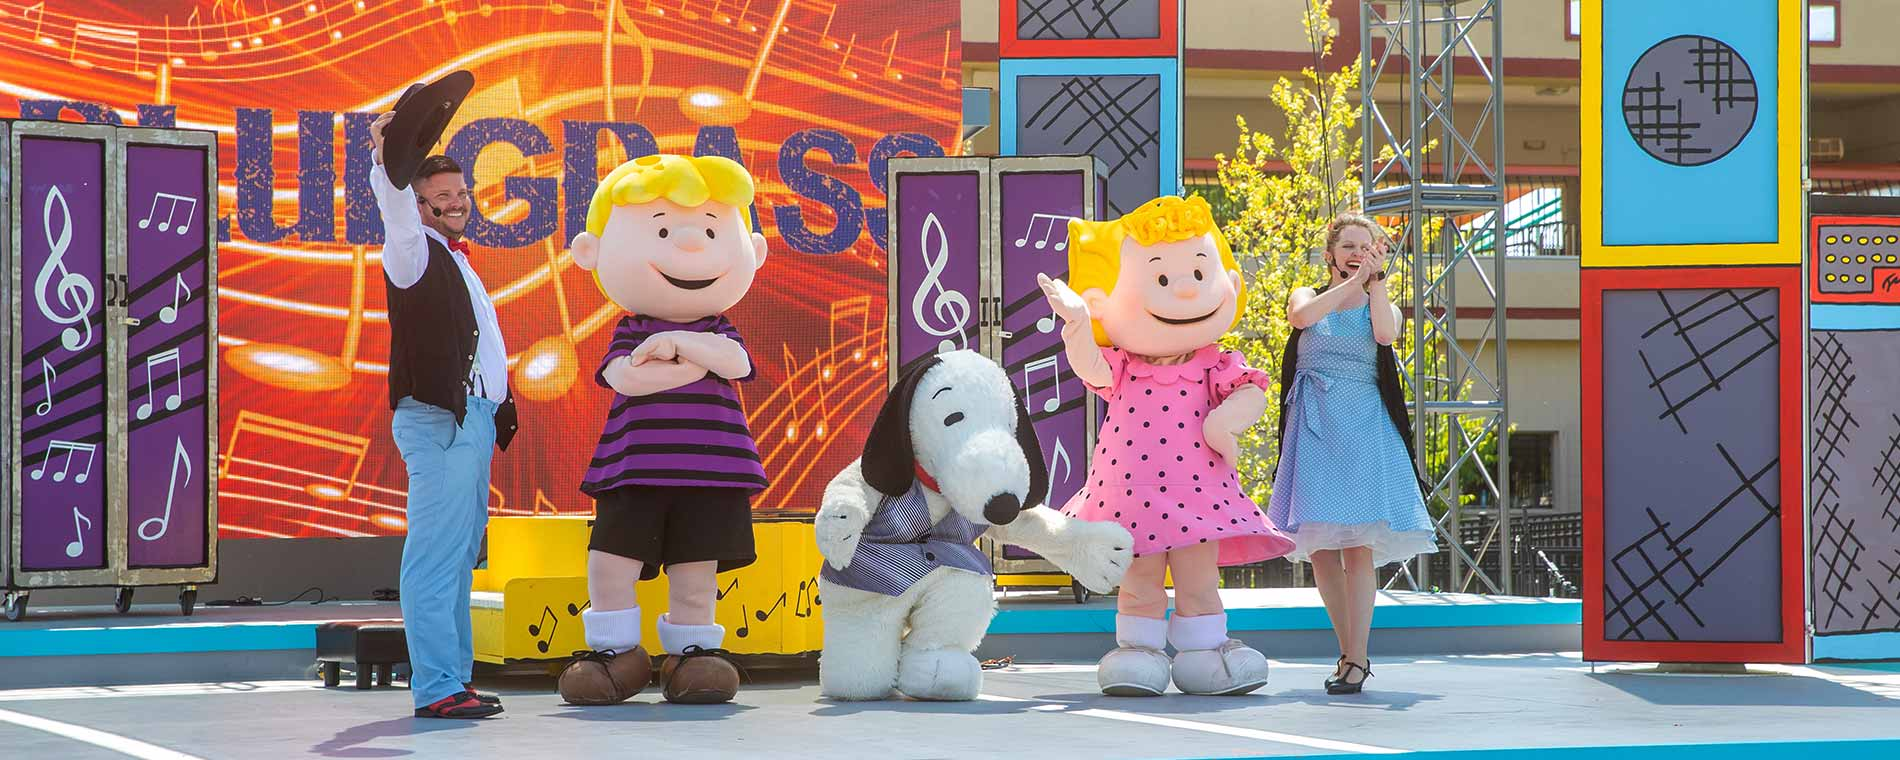 Peanuts Celebration at Valleyfair